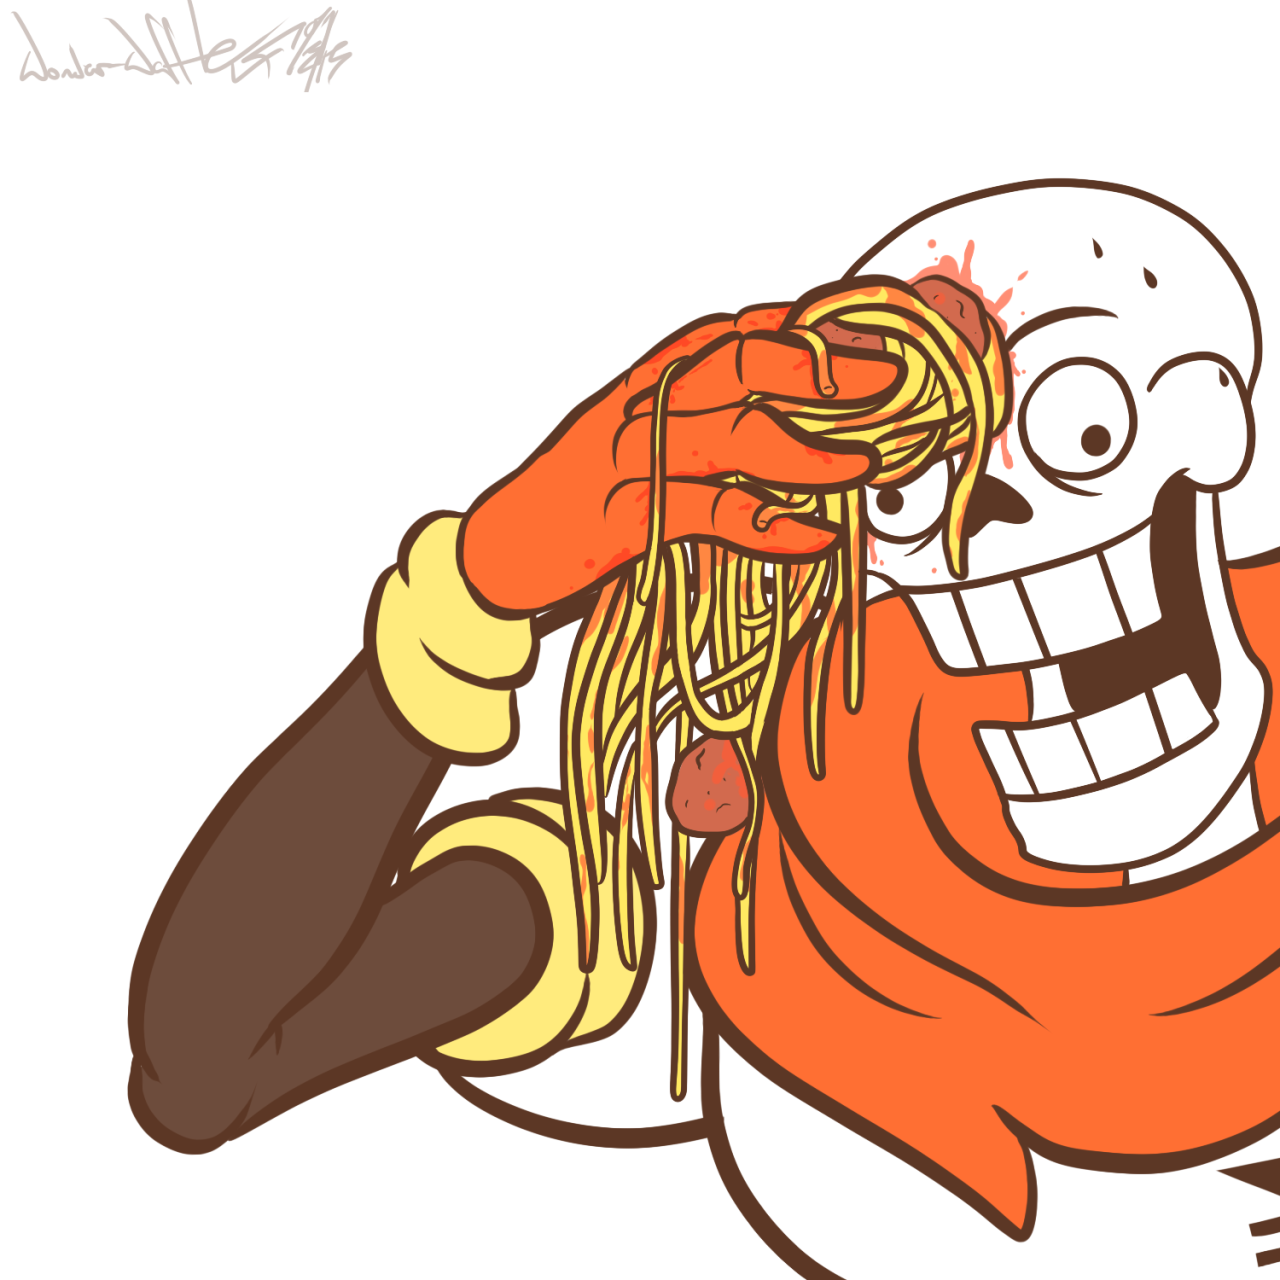 Wiping Skeleton Sweat With Spaghetti Sweating Towel Guy Know